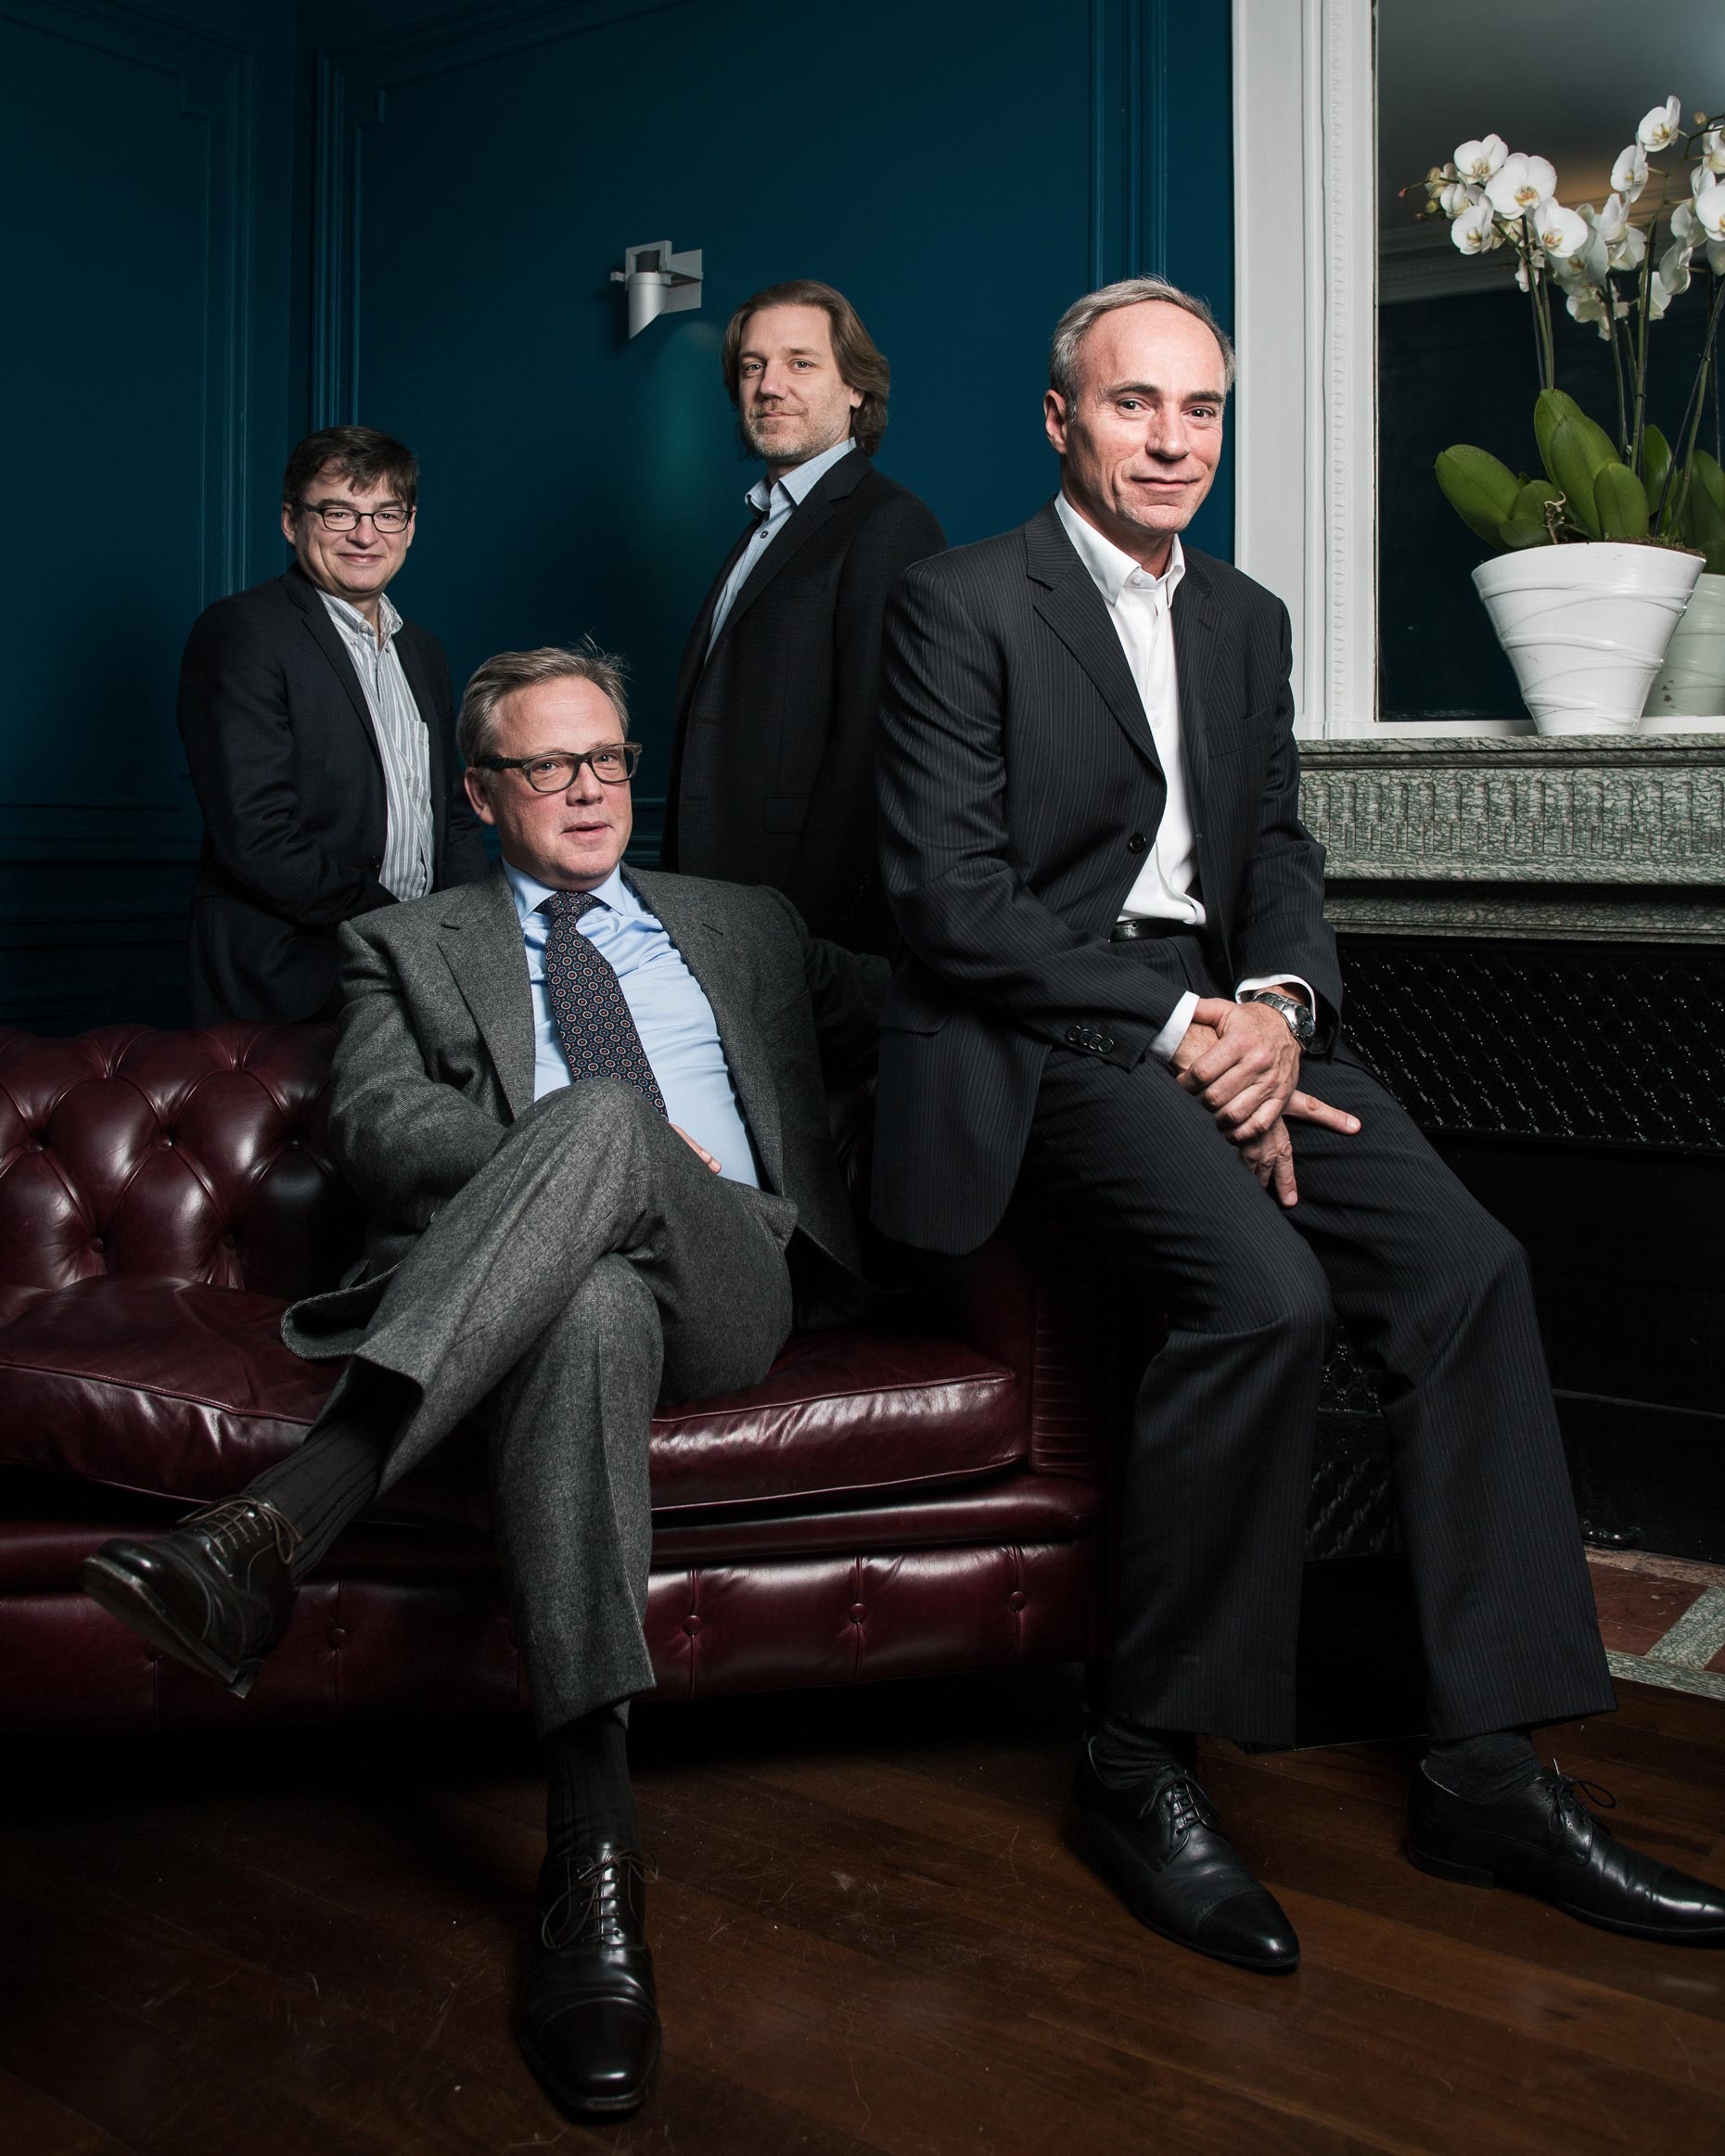 For Bloomberg Markets - Jean-Philippe Bouchaud, Philippe Jordan, Marc Potters and Jacques Sauliere - Capital Fund Management